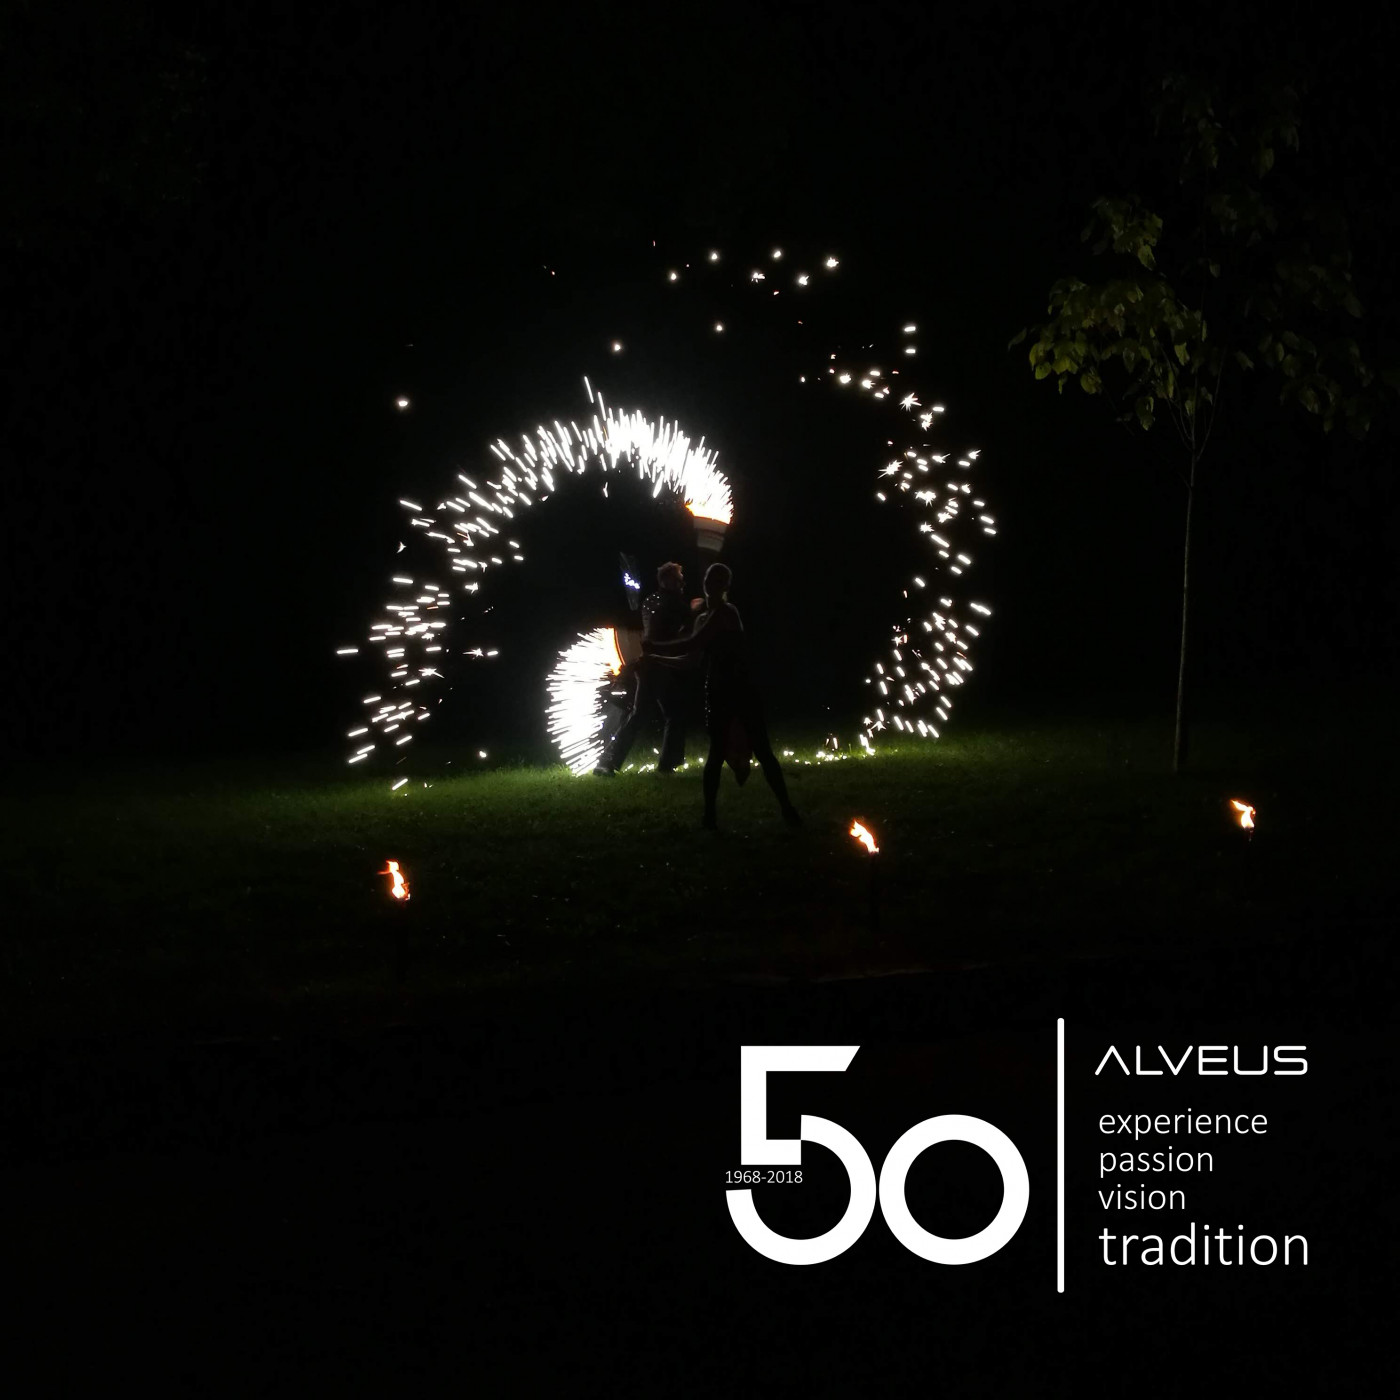 50th B-day for ALVEUS kitchen sinks